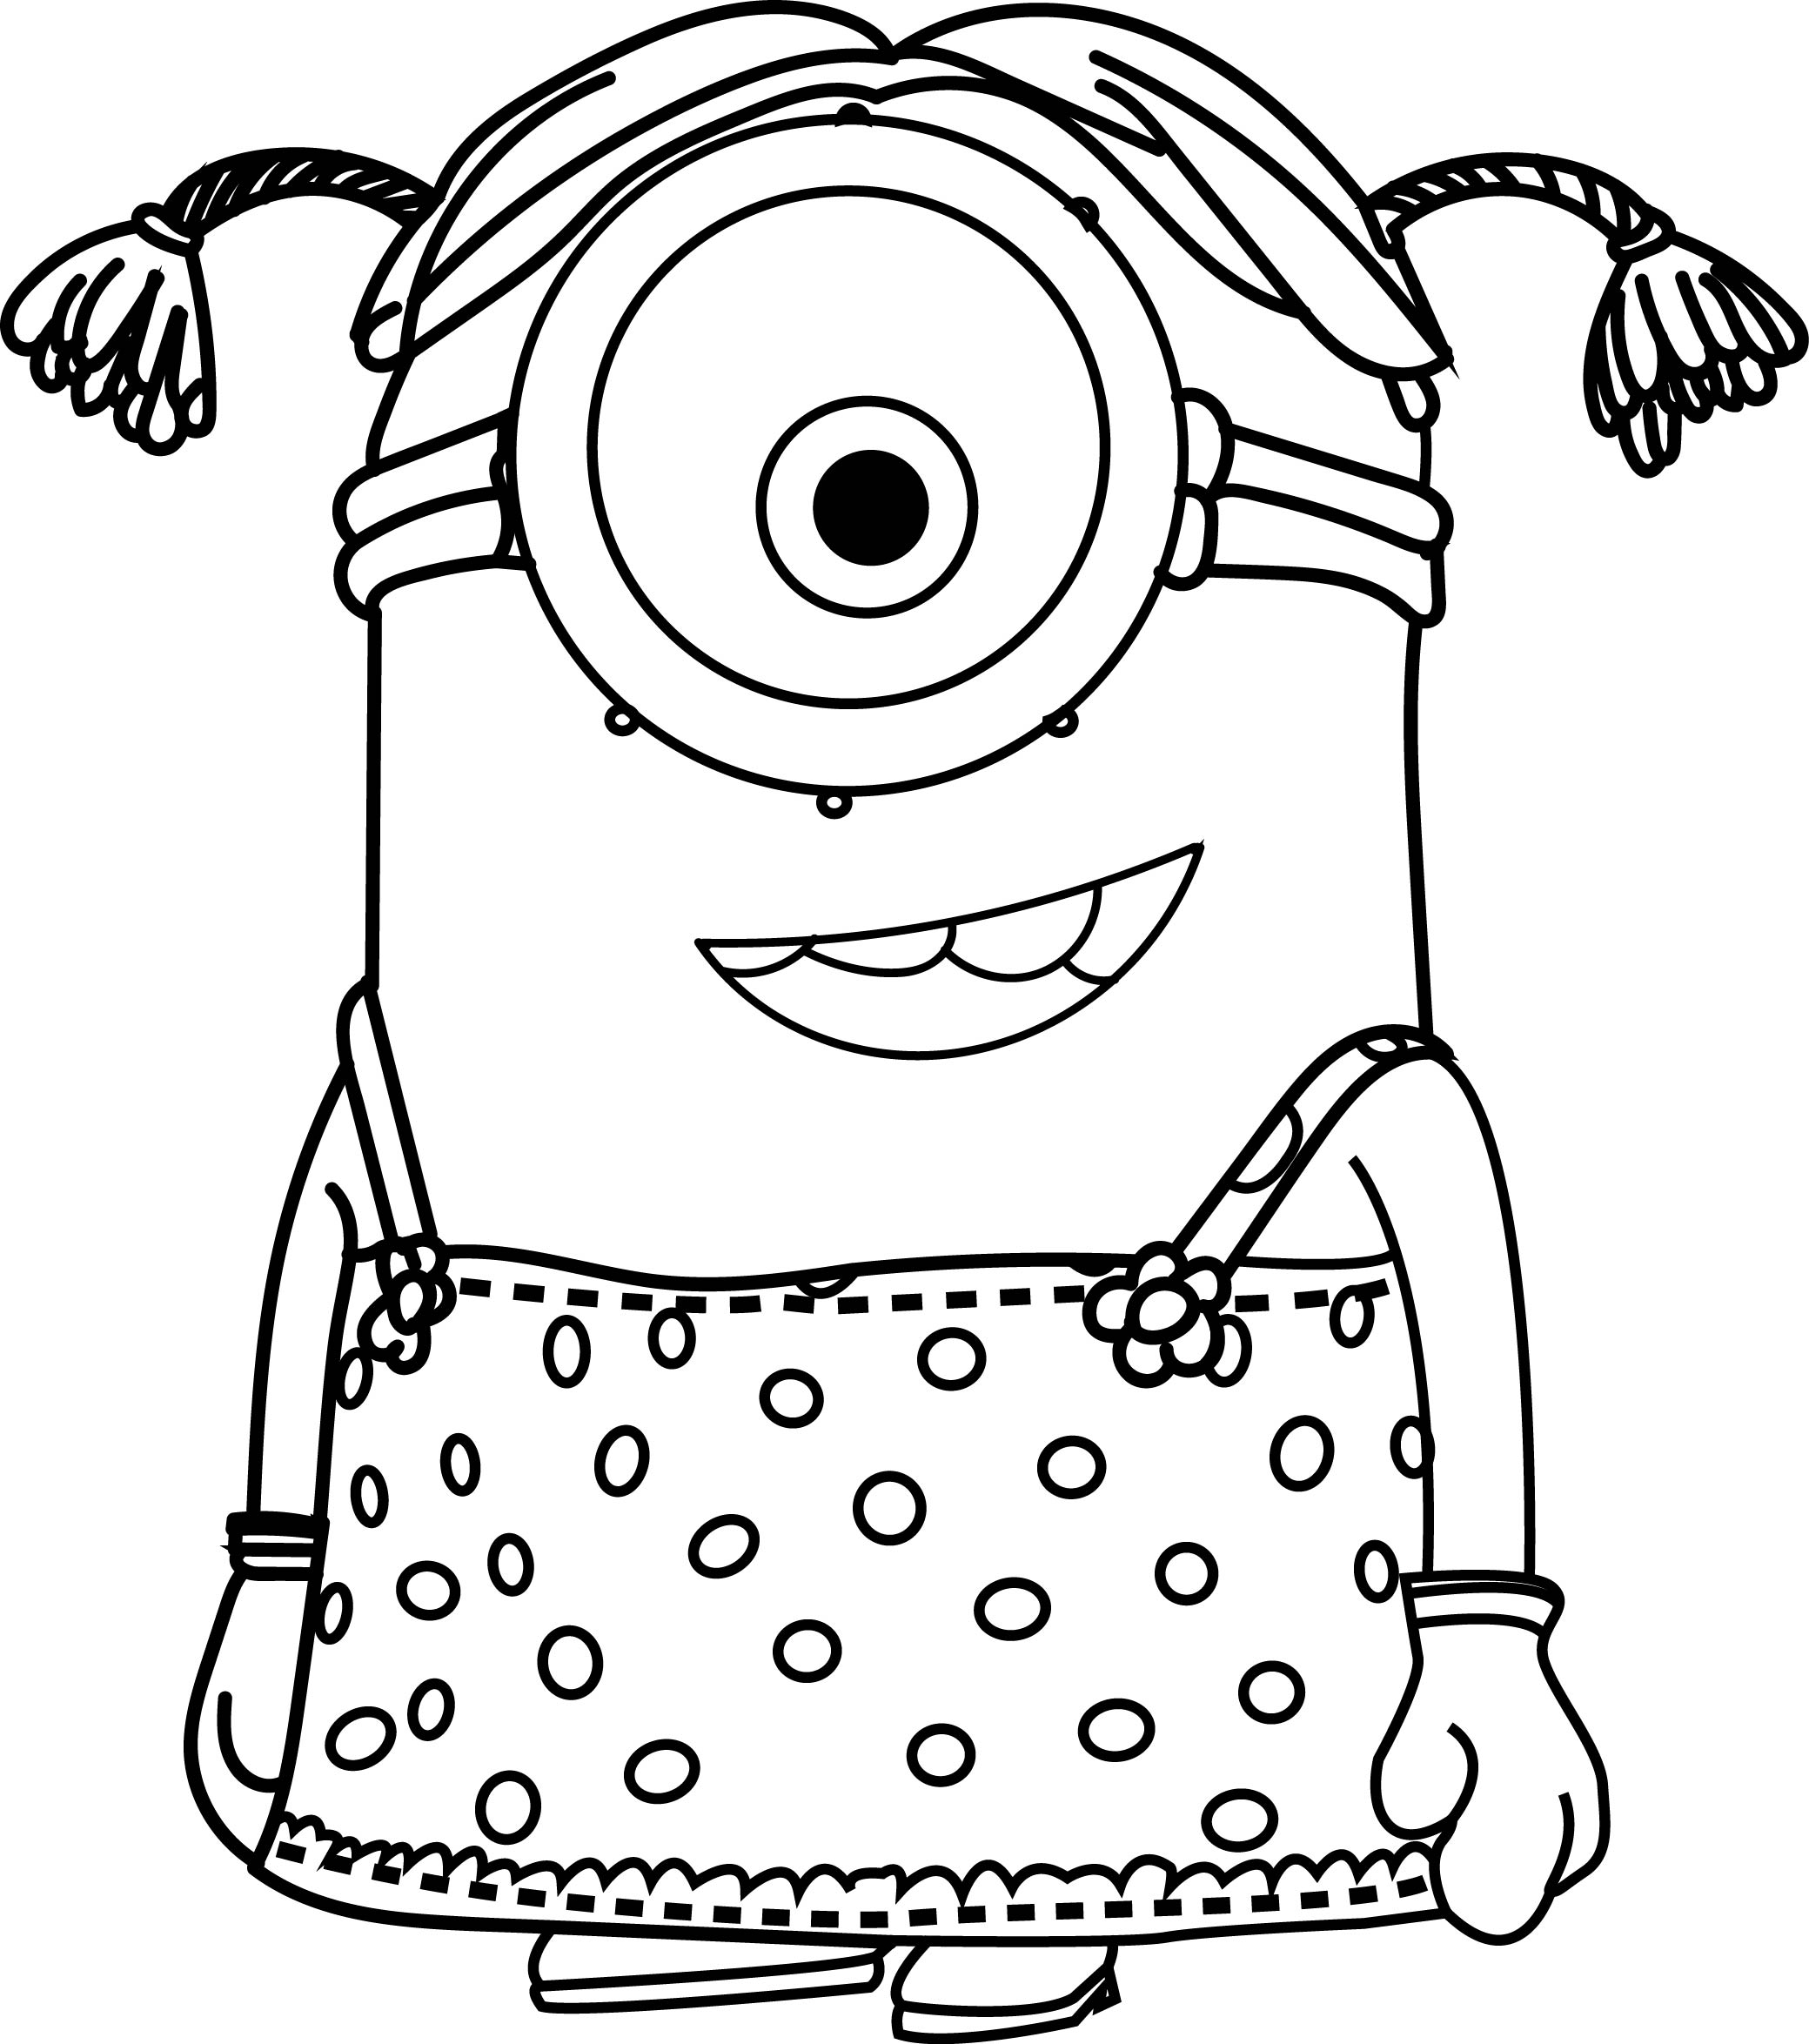 Minion Outline Drawing At Getdrawings